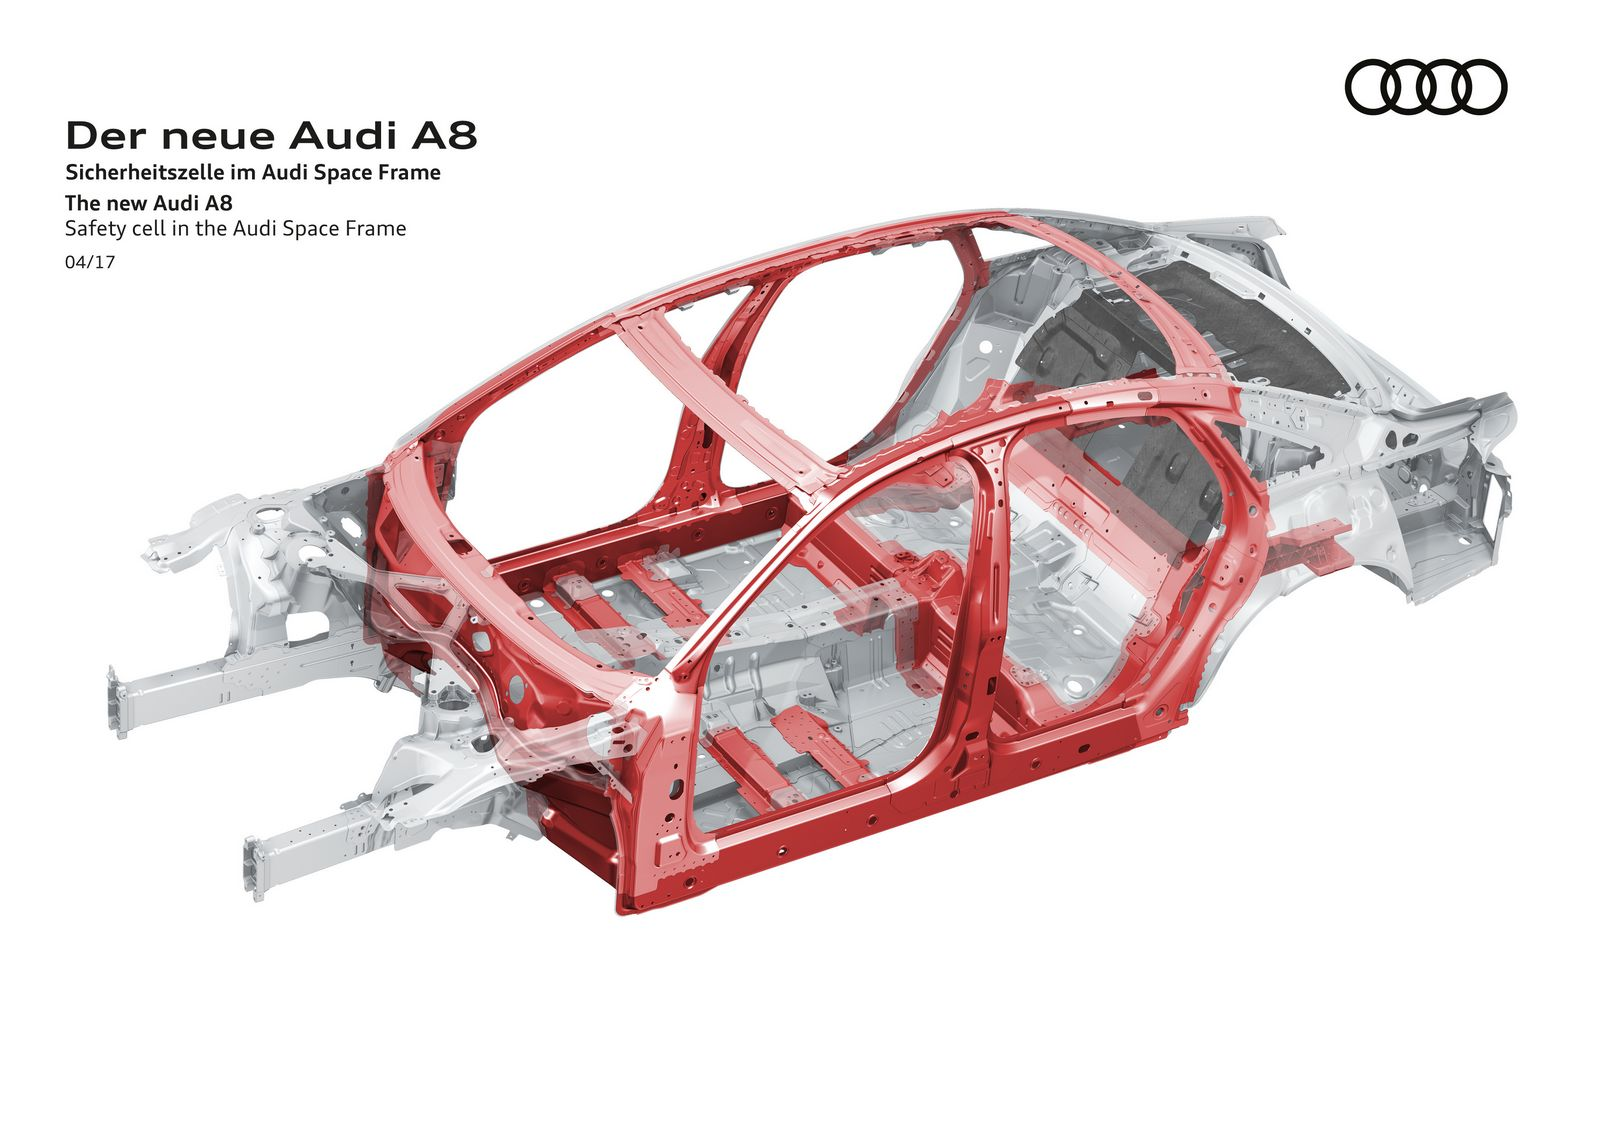 Safety cell in the Audi Space Frame